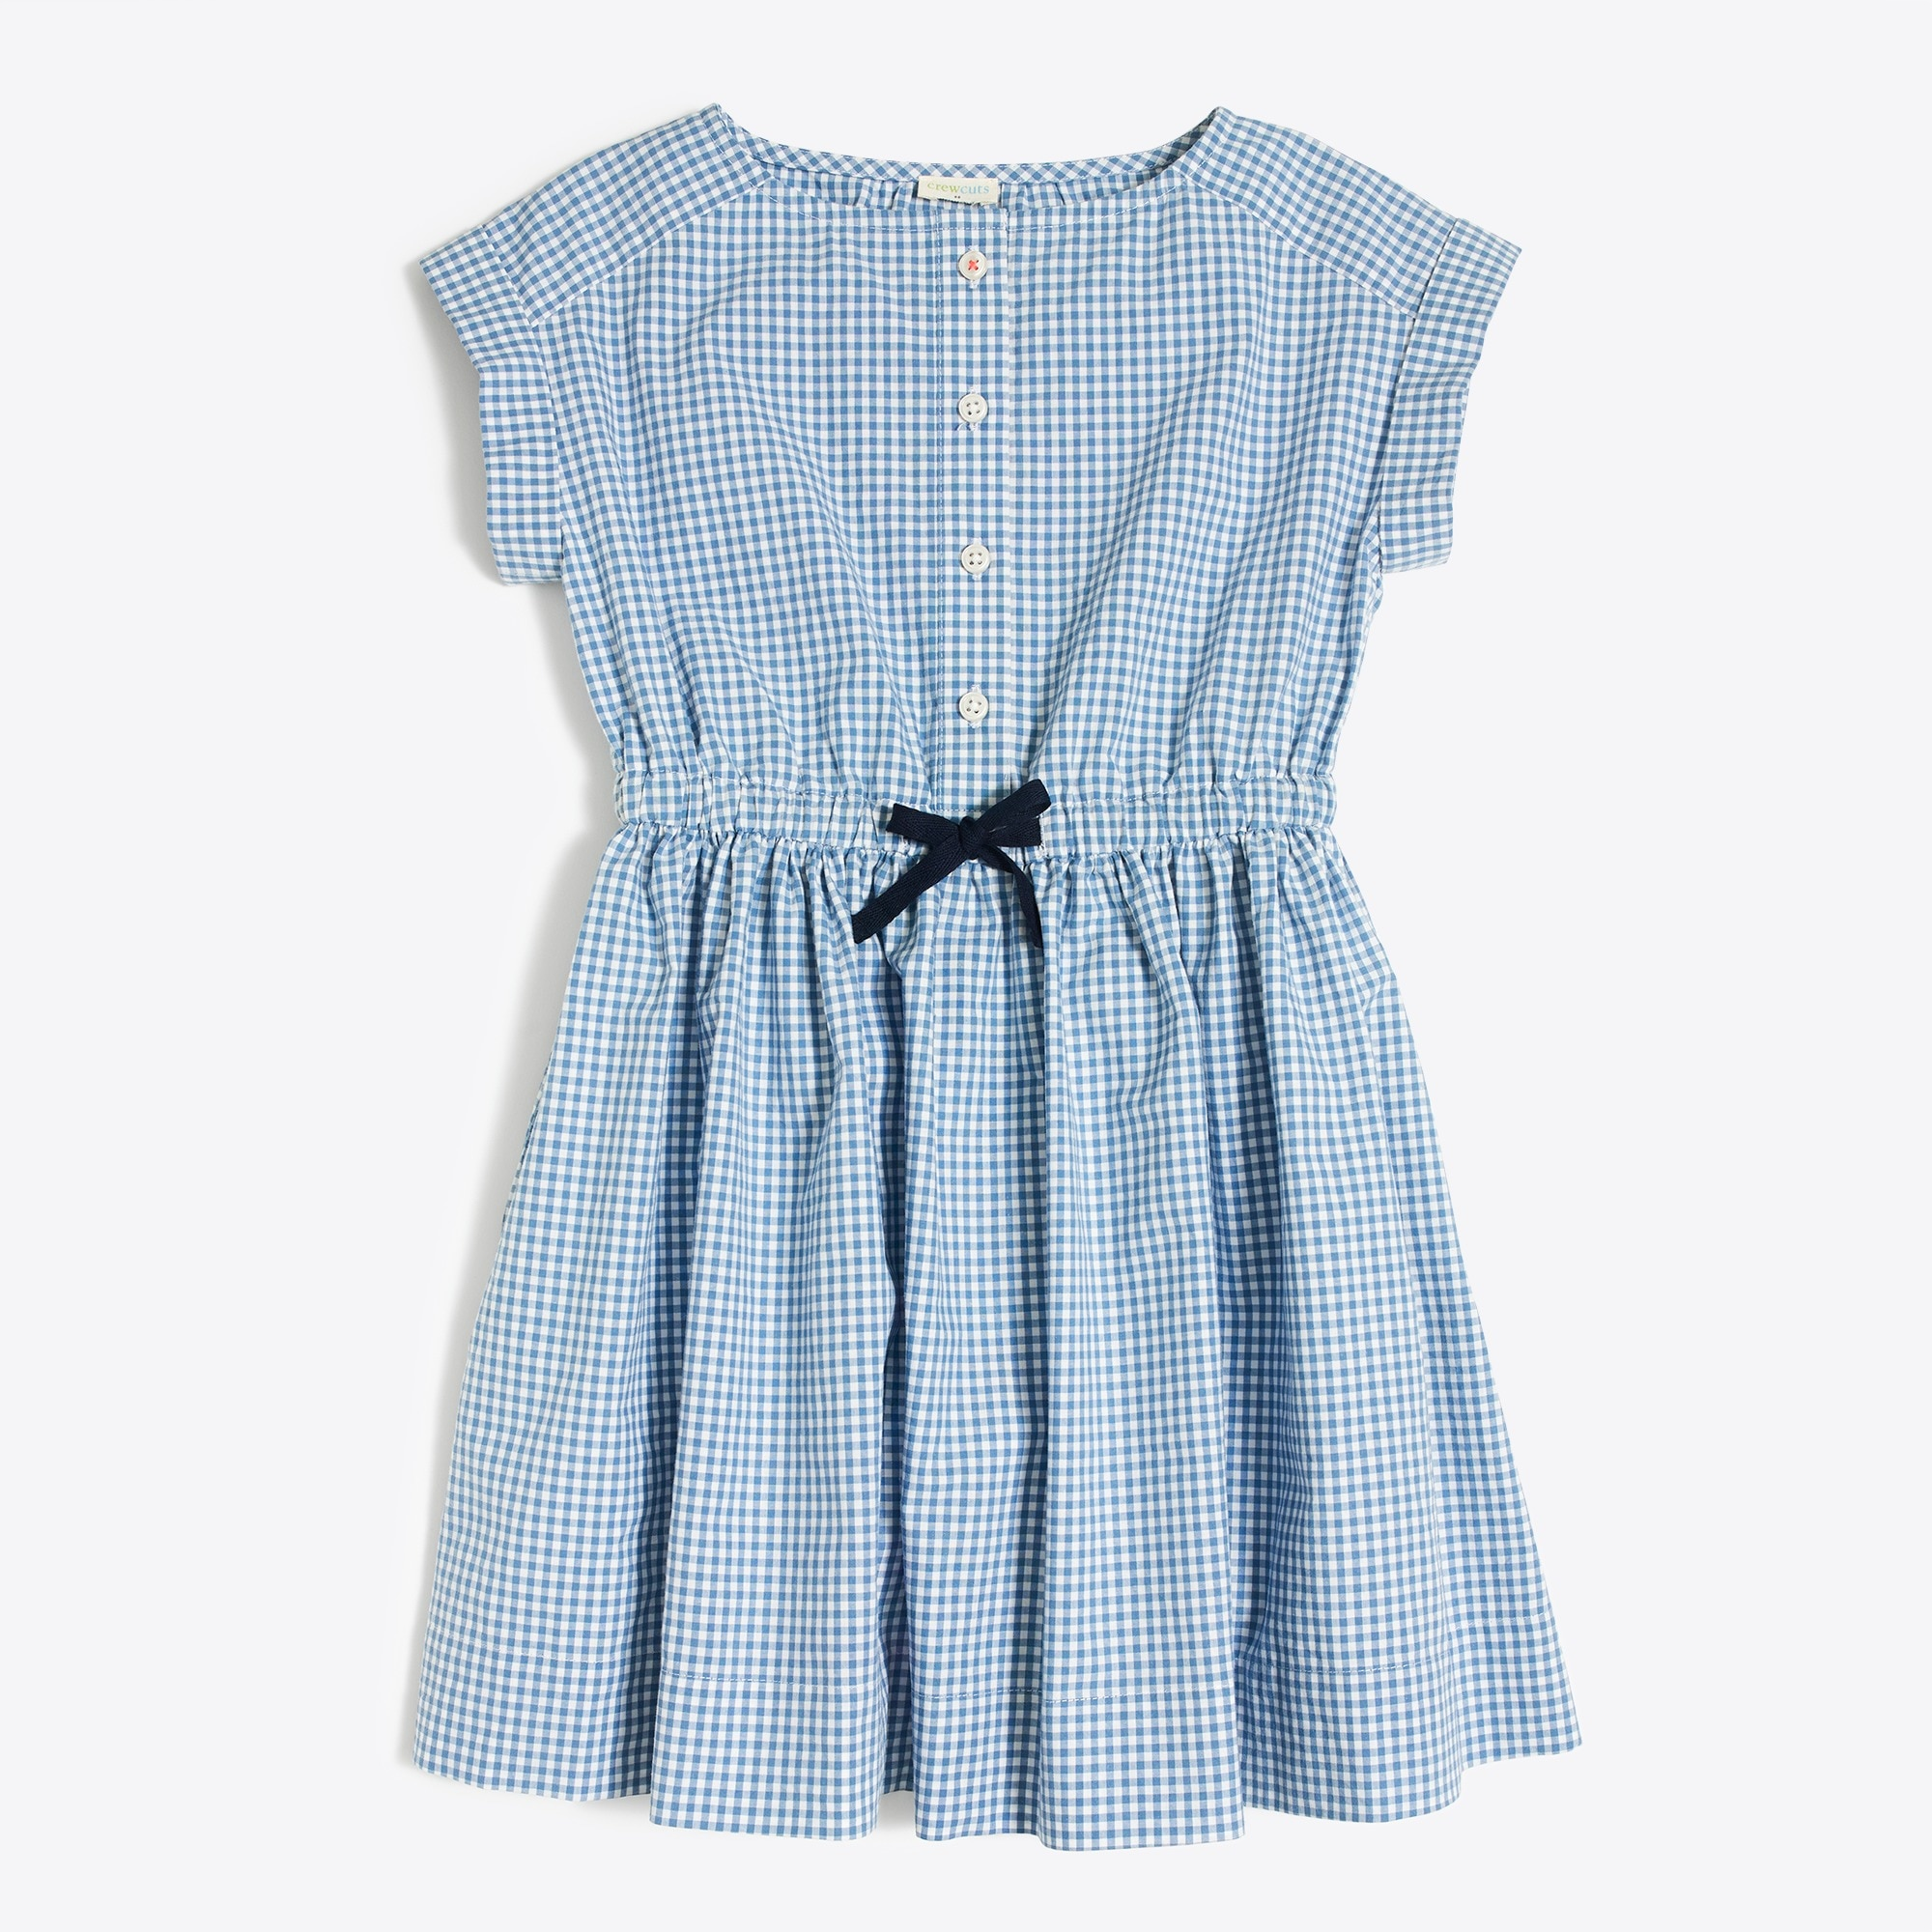 Image 2 for Girls' short-sleeve gingham shirt dress